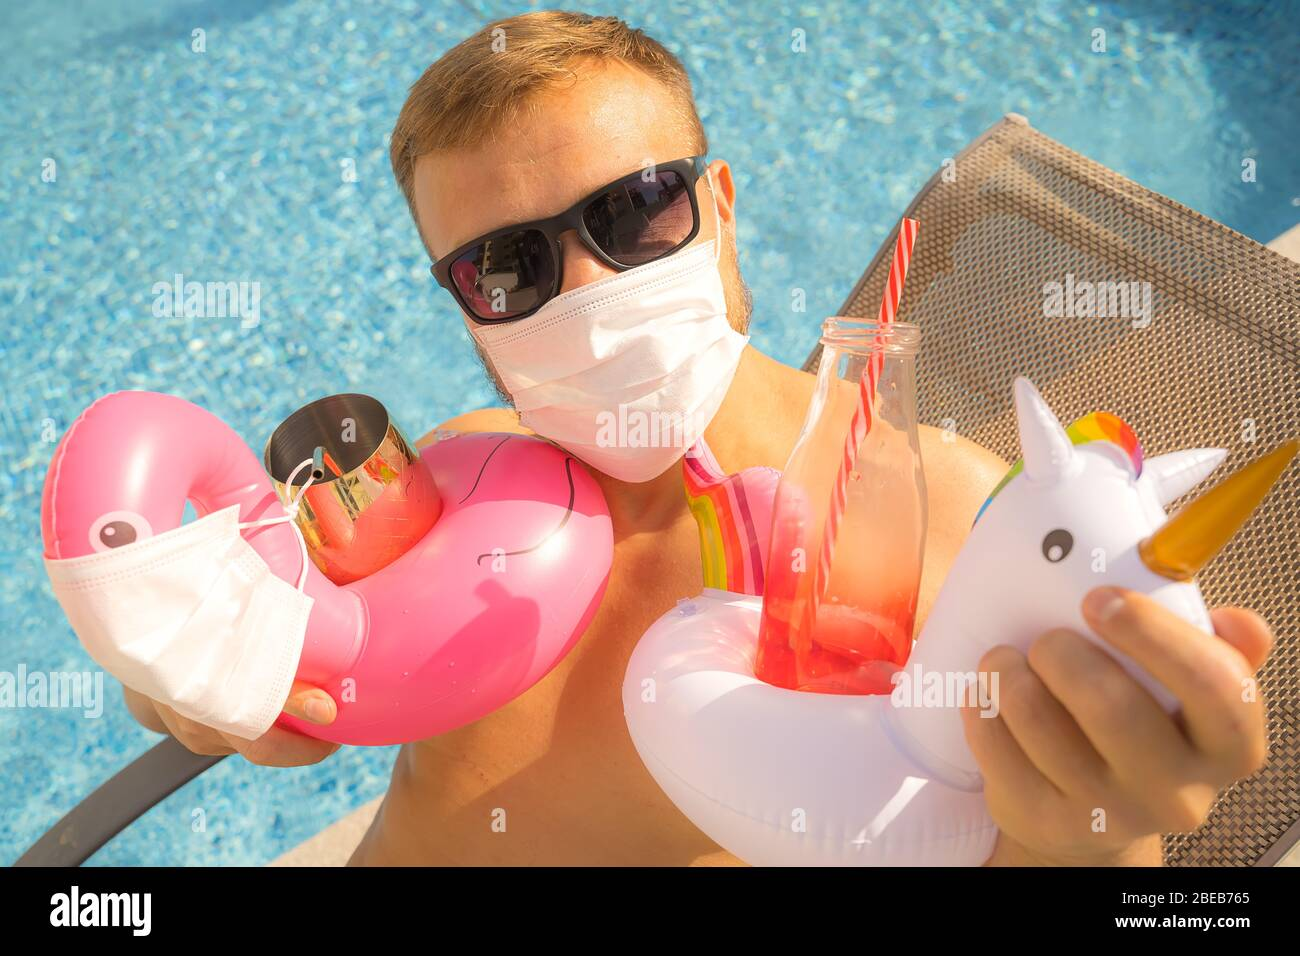 Caucasian male model on a beach chair next to a swimming pool wearing face mask, holding inflatable pool toys Stock Photo